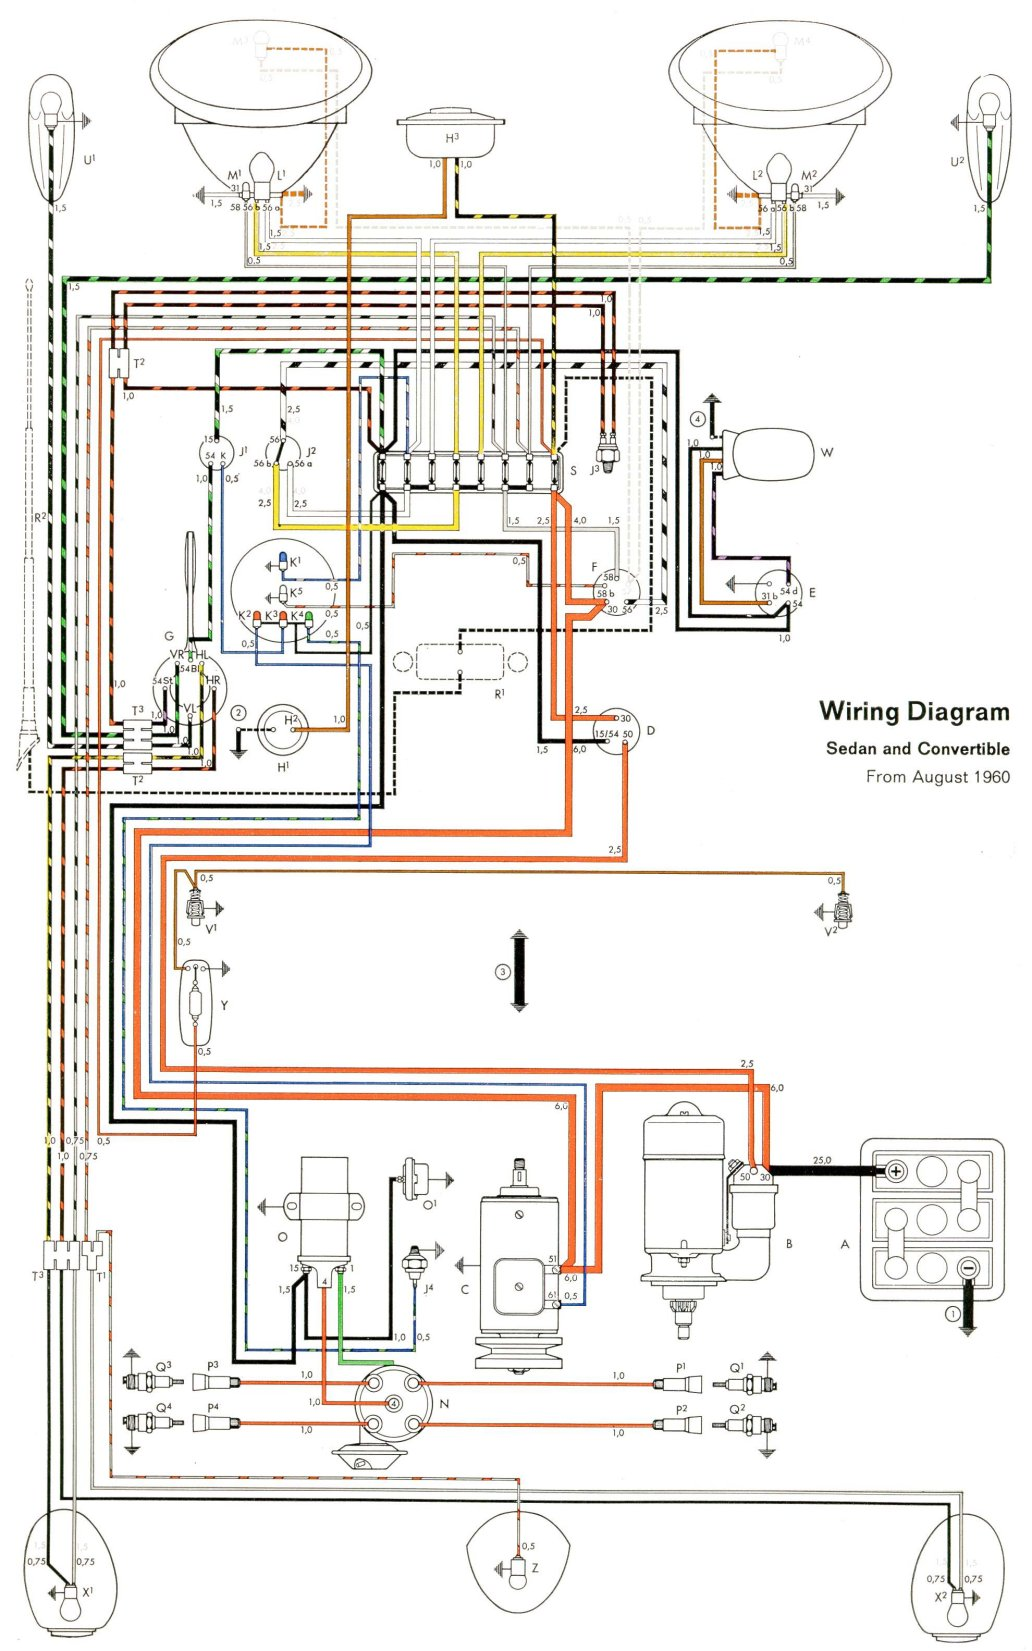 thesamba com type 1 wiring diagrams rh thesamba com Electrical Wire Color Codes Stereo Wire Colors